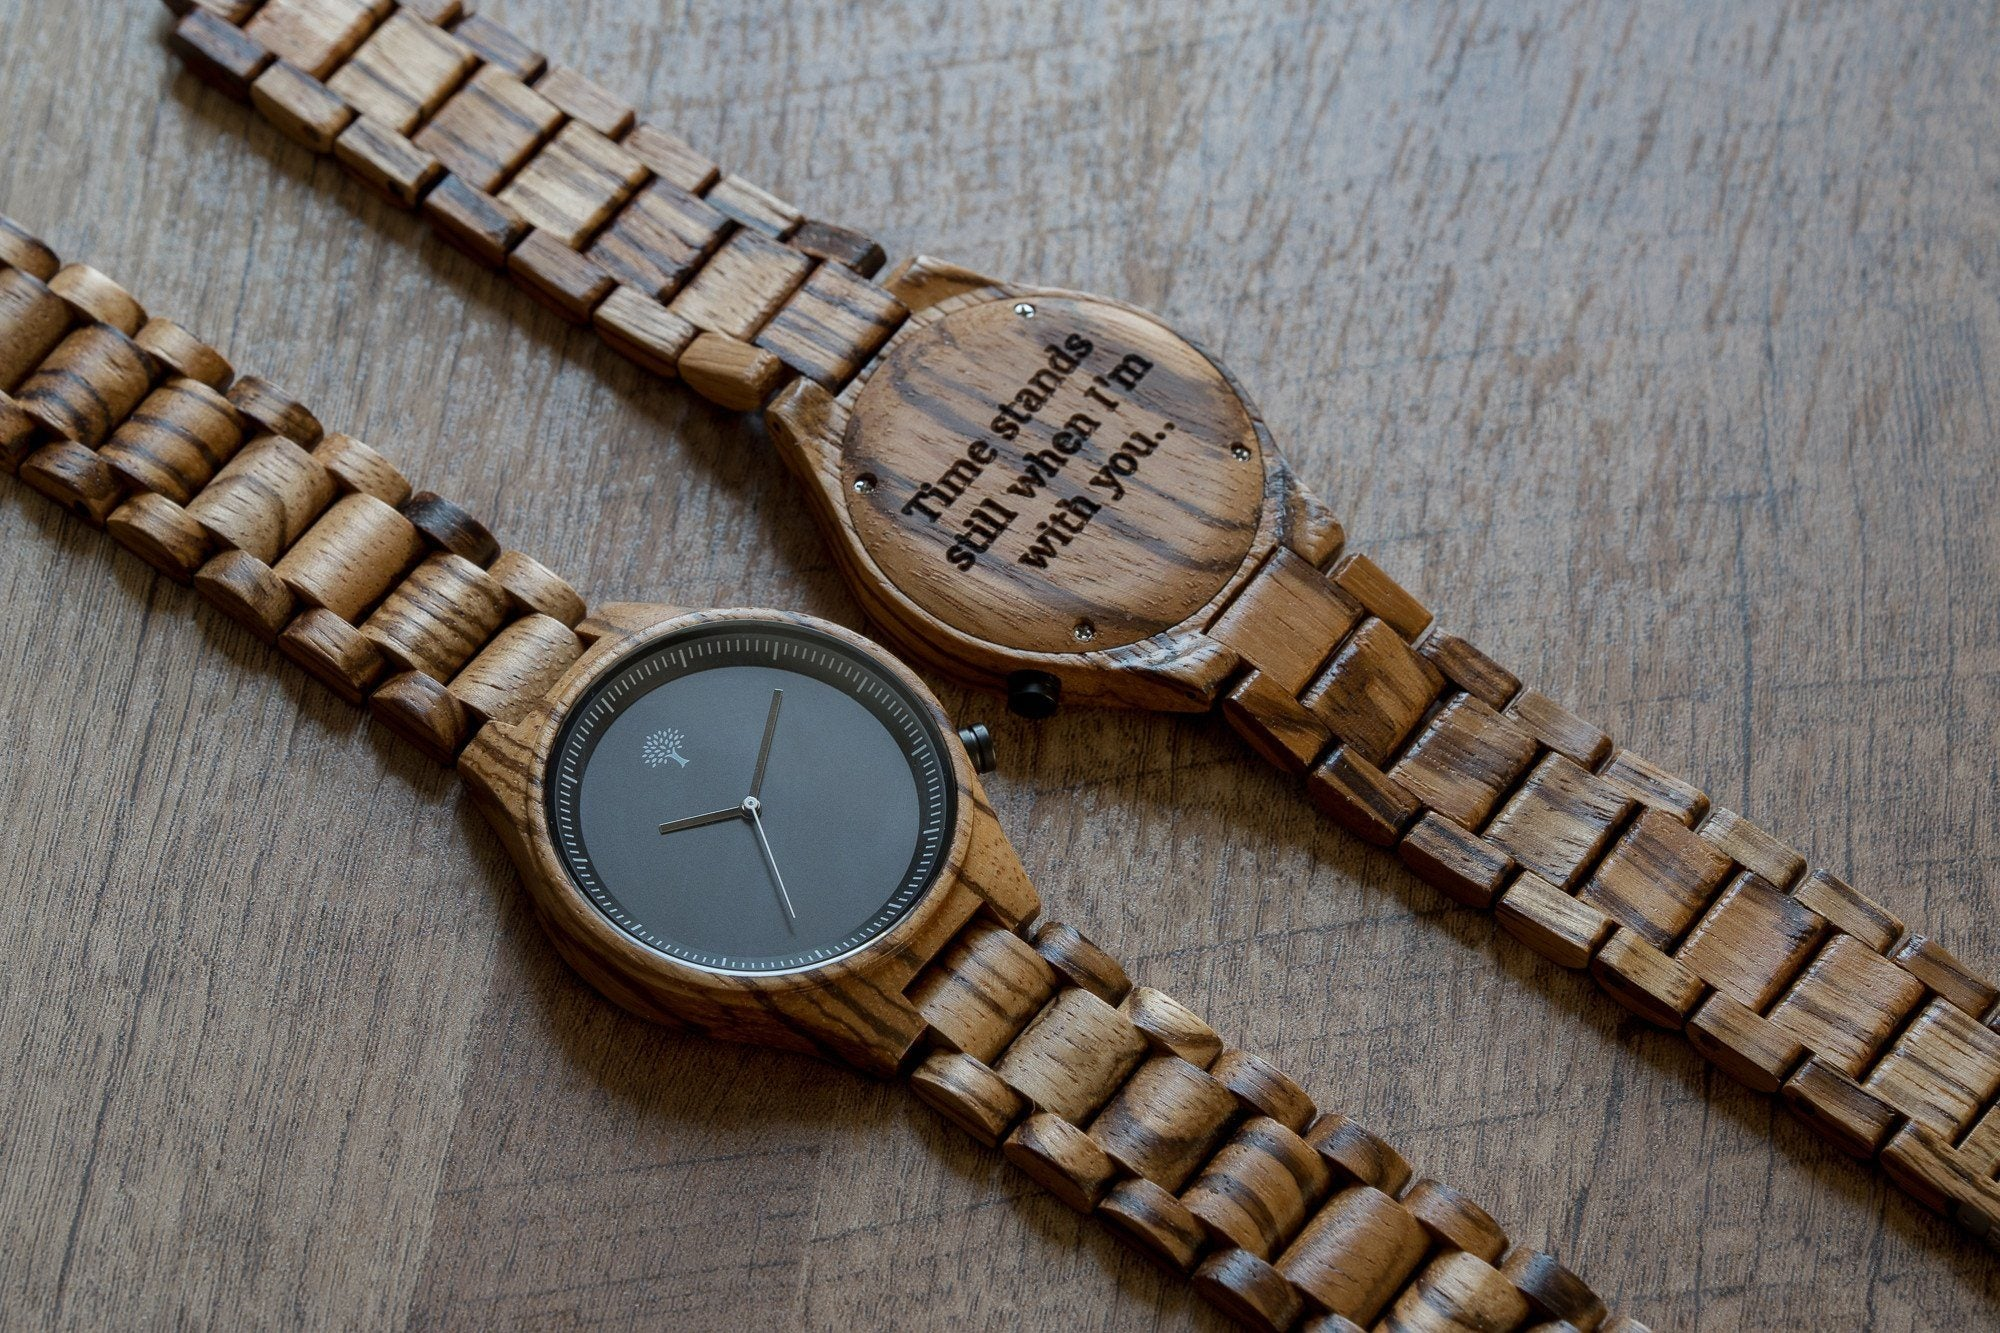 drop quartz gift in store clocks shipping women watches fashion custom online with bobo bird japan bamboo watch product wood box